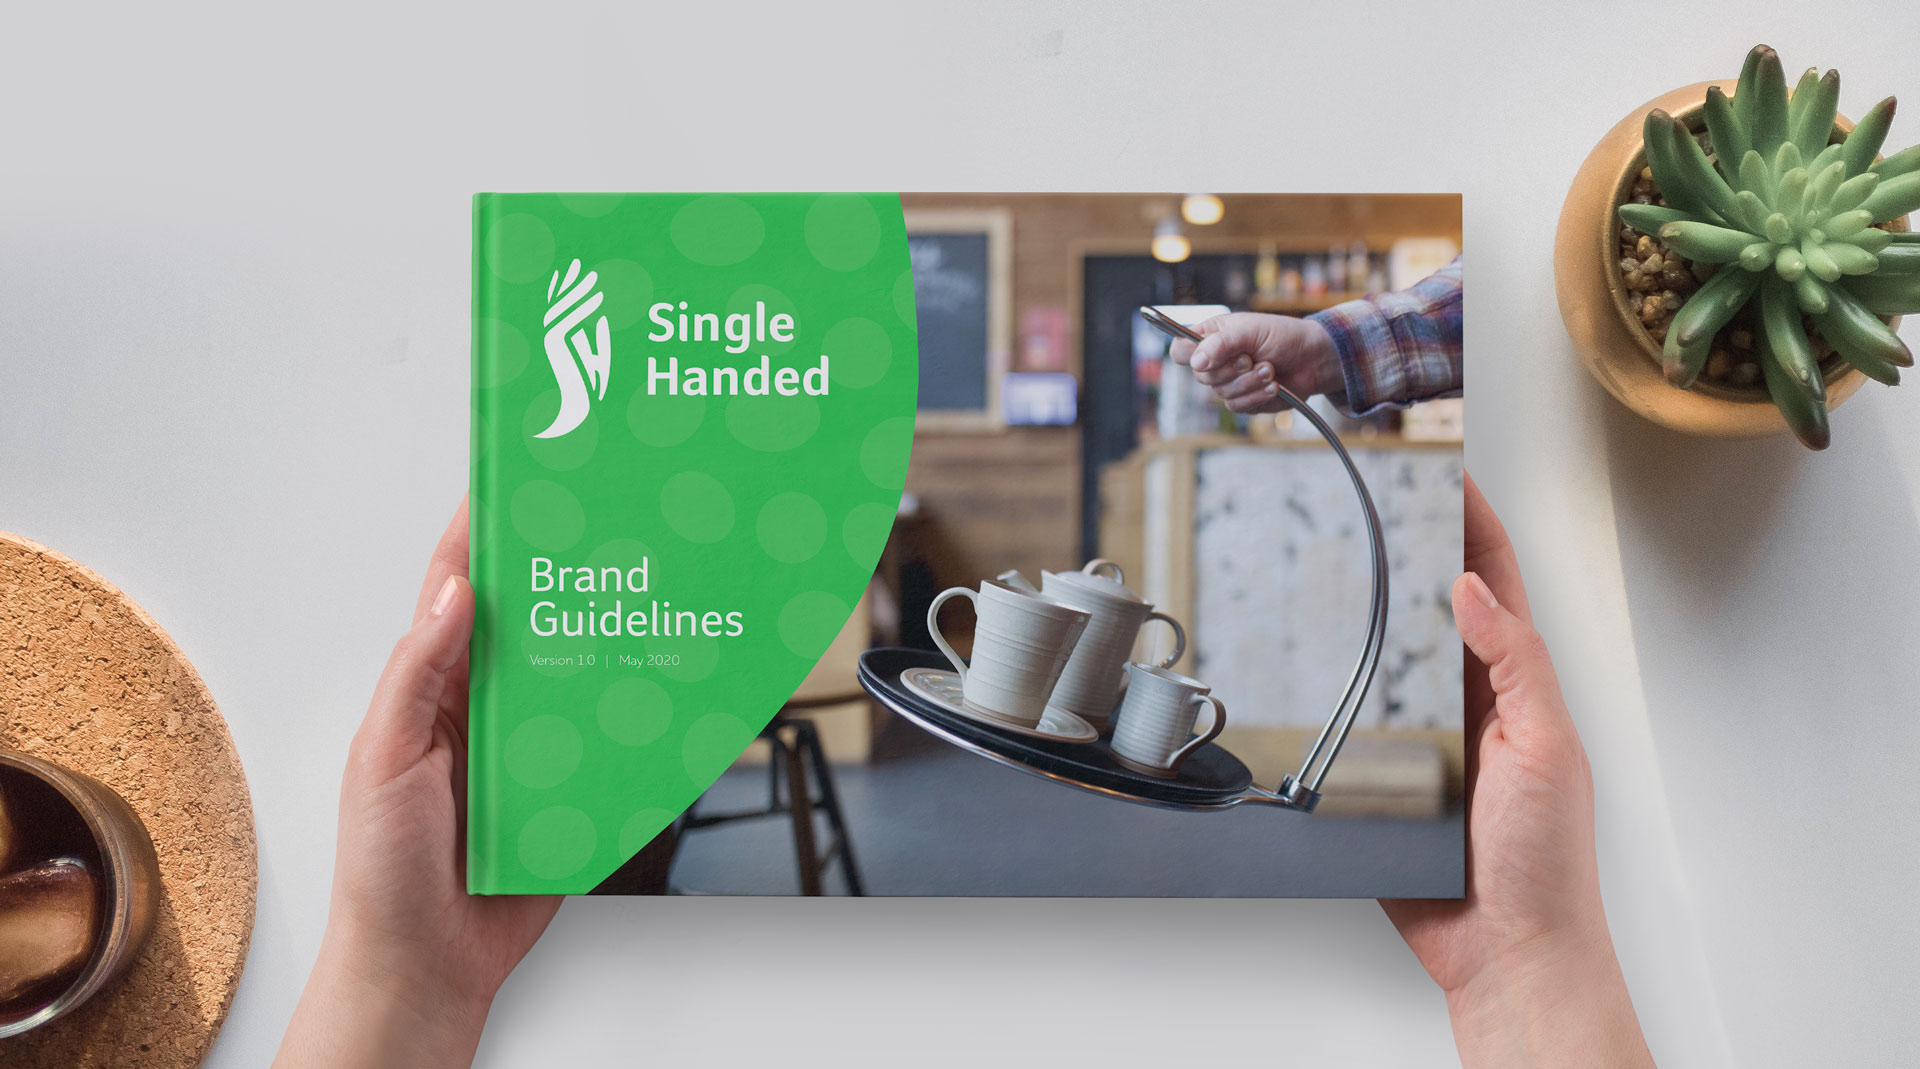 brand-guidelines-company-london-essex